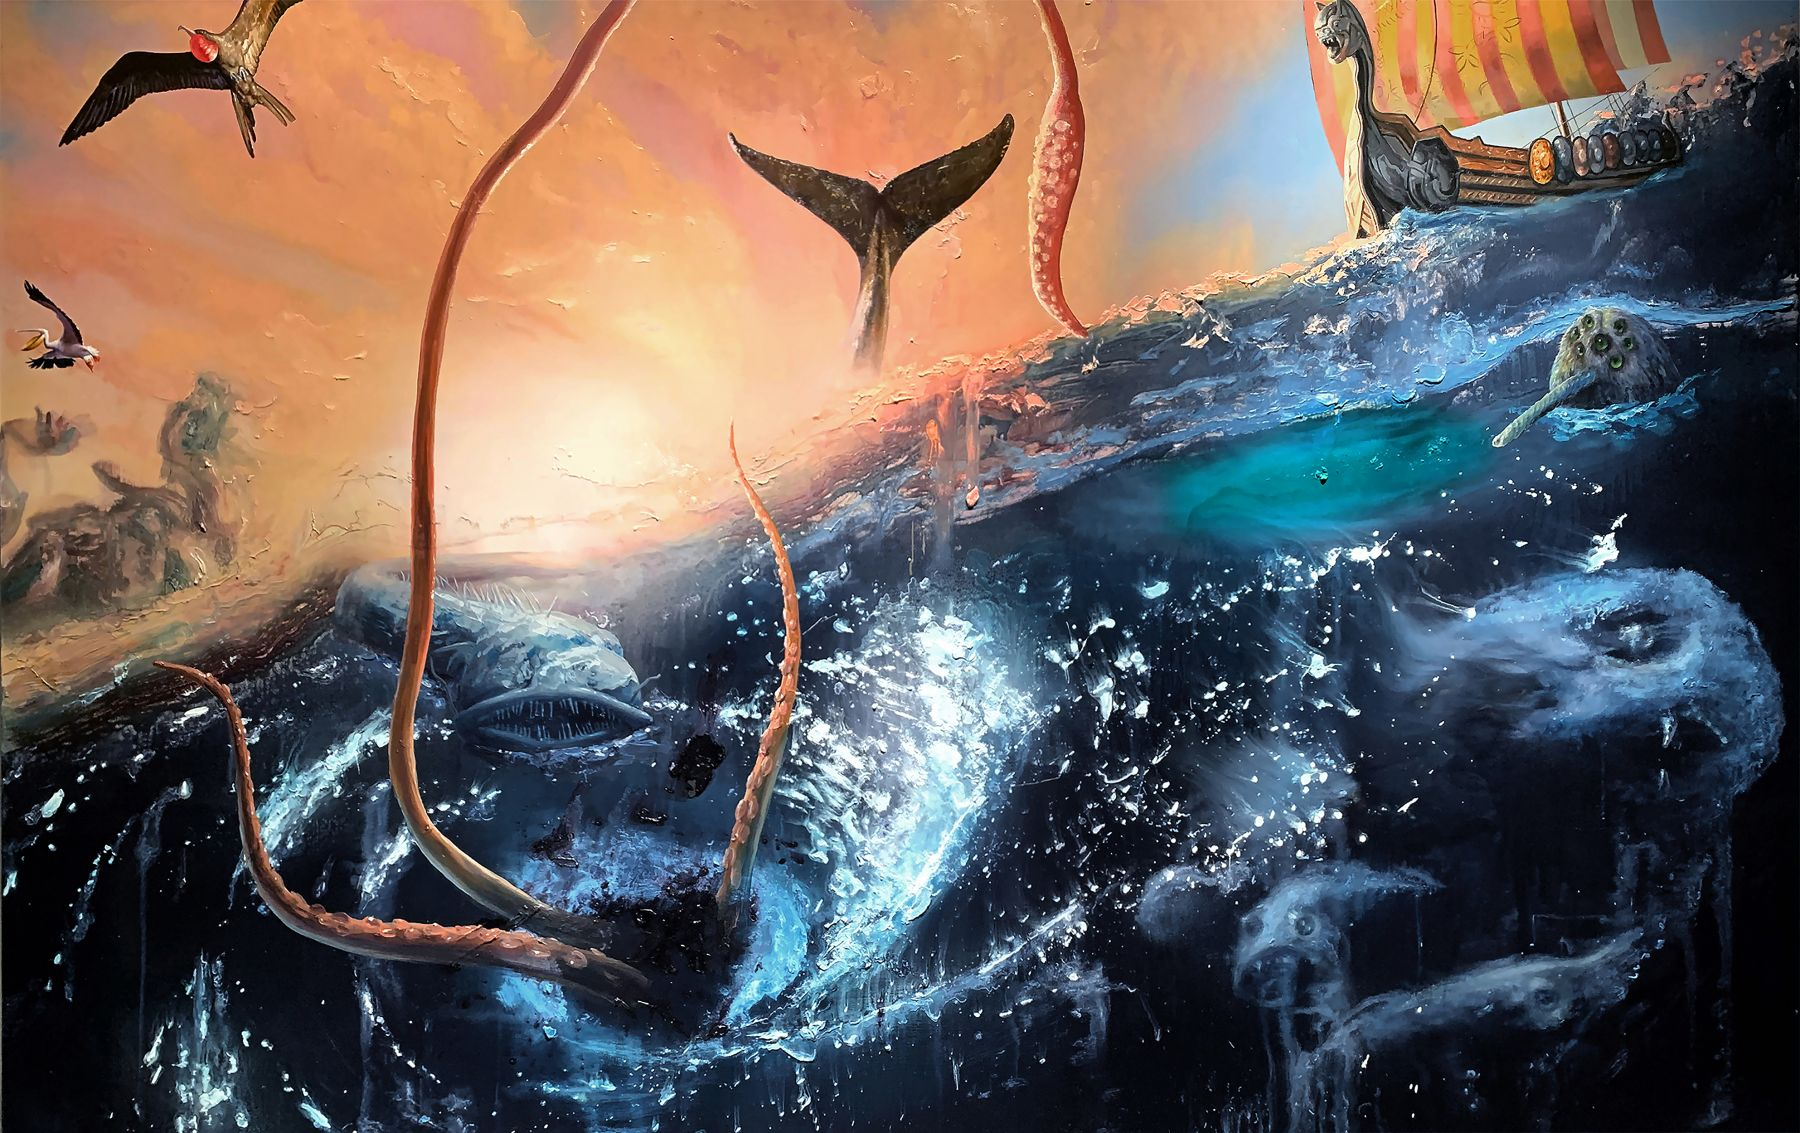 a kraken's tentacles and a whale tail emerge from a turbulent sea and birds fly overhead as a viking ship approaches